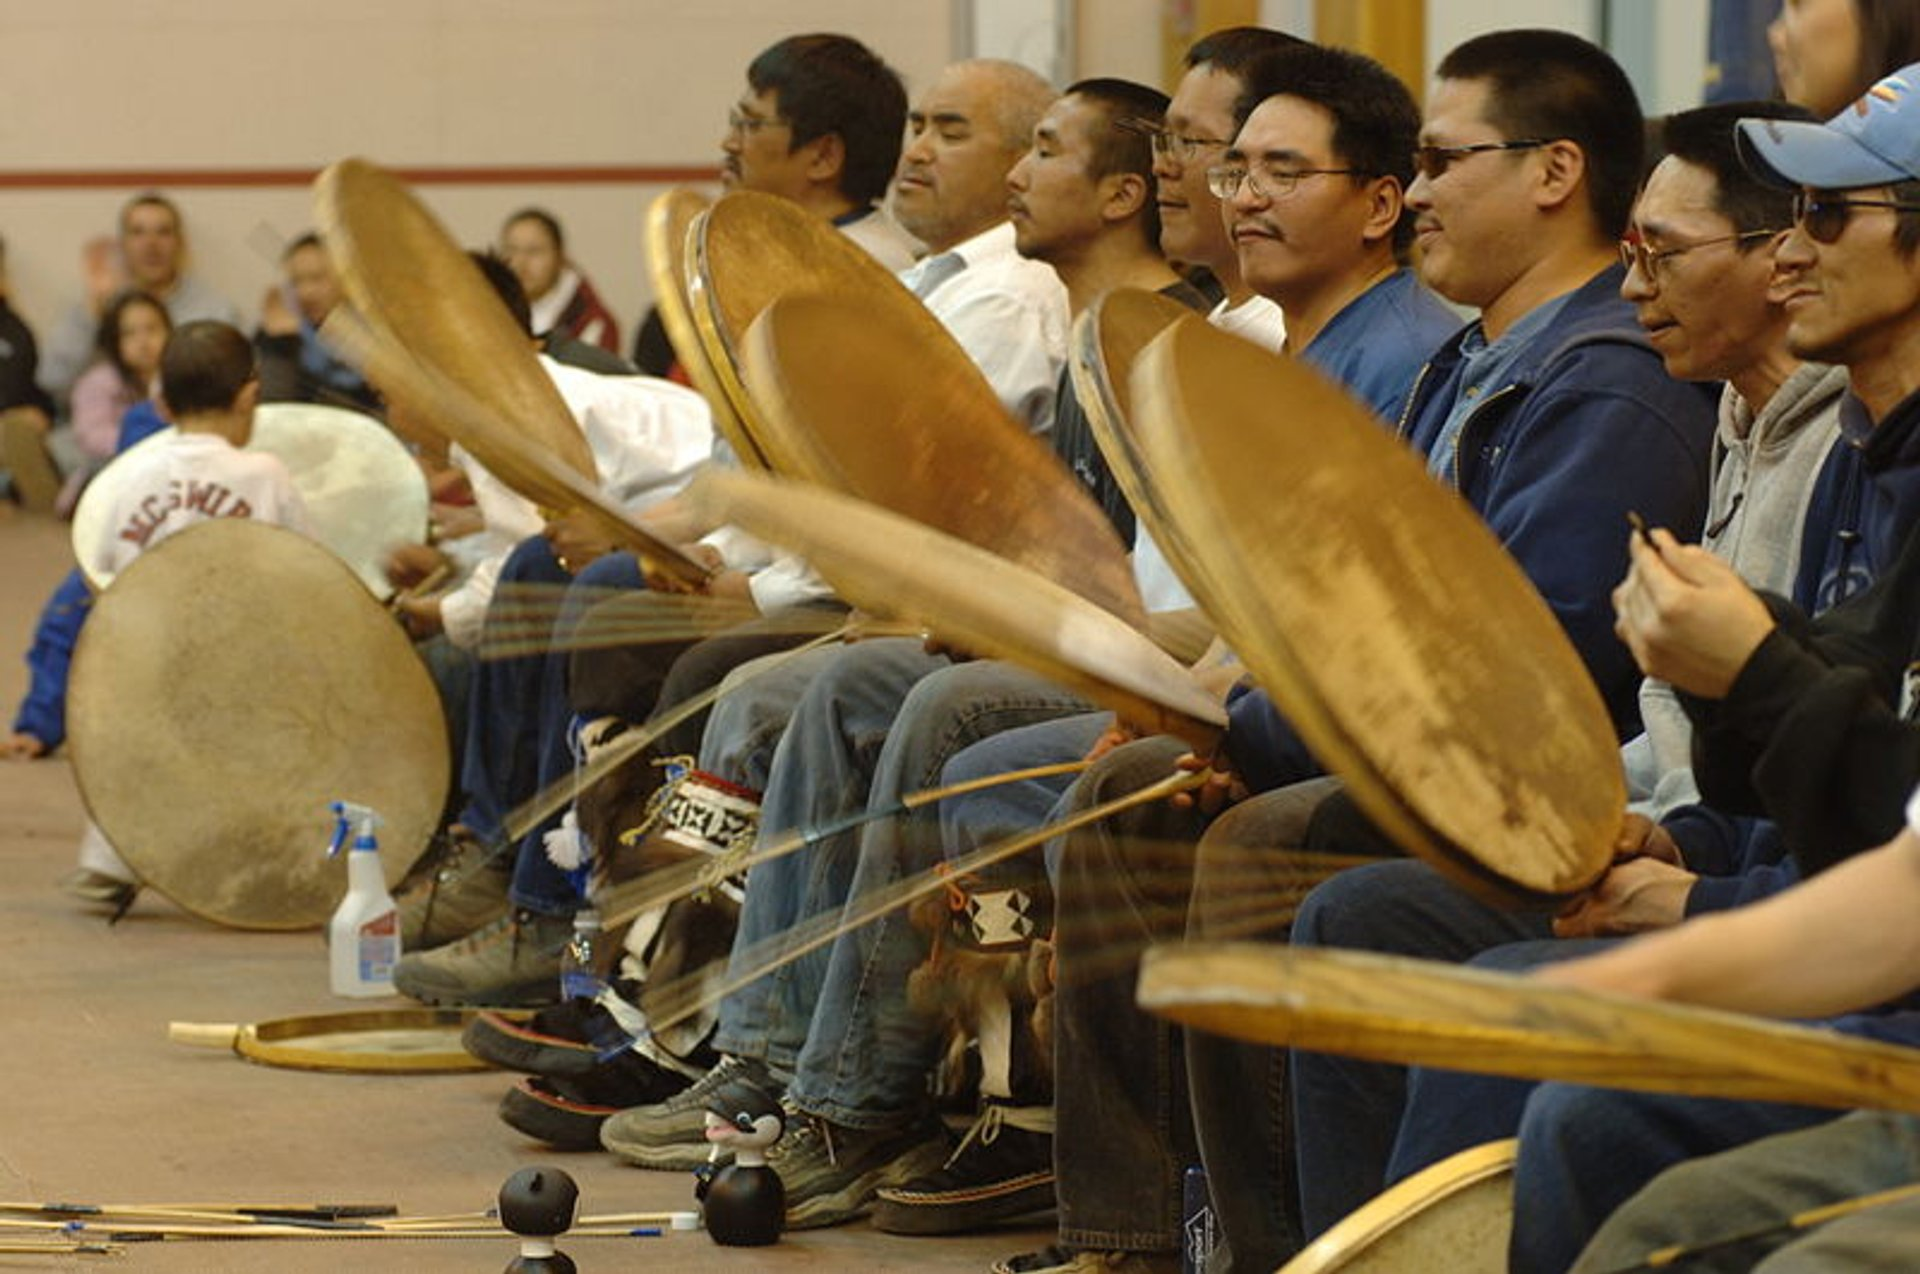 Inupiat drummers at Eskimo Dance 2020